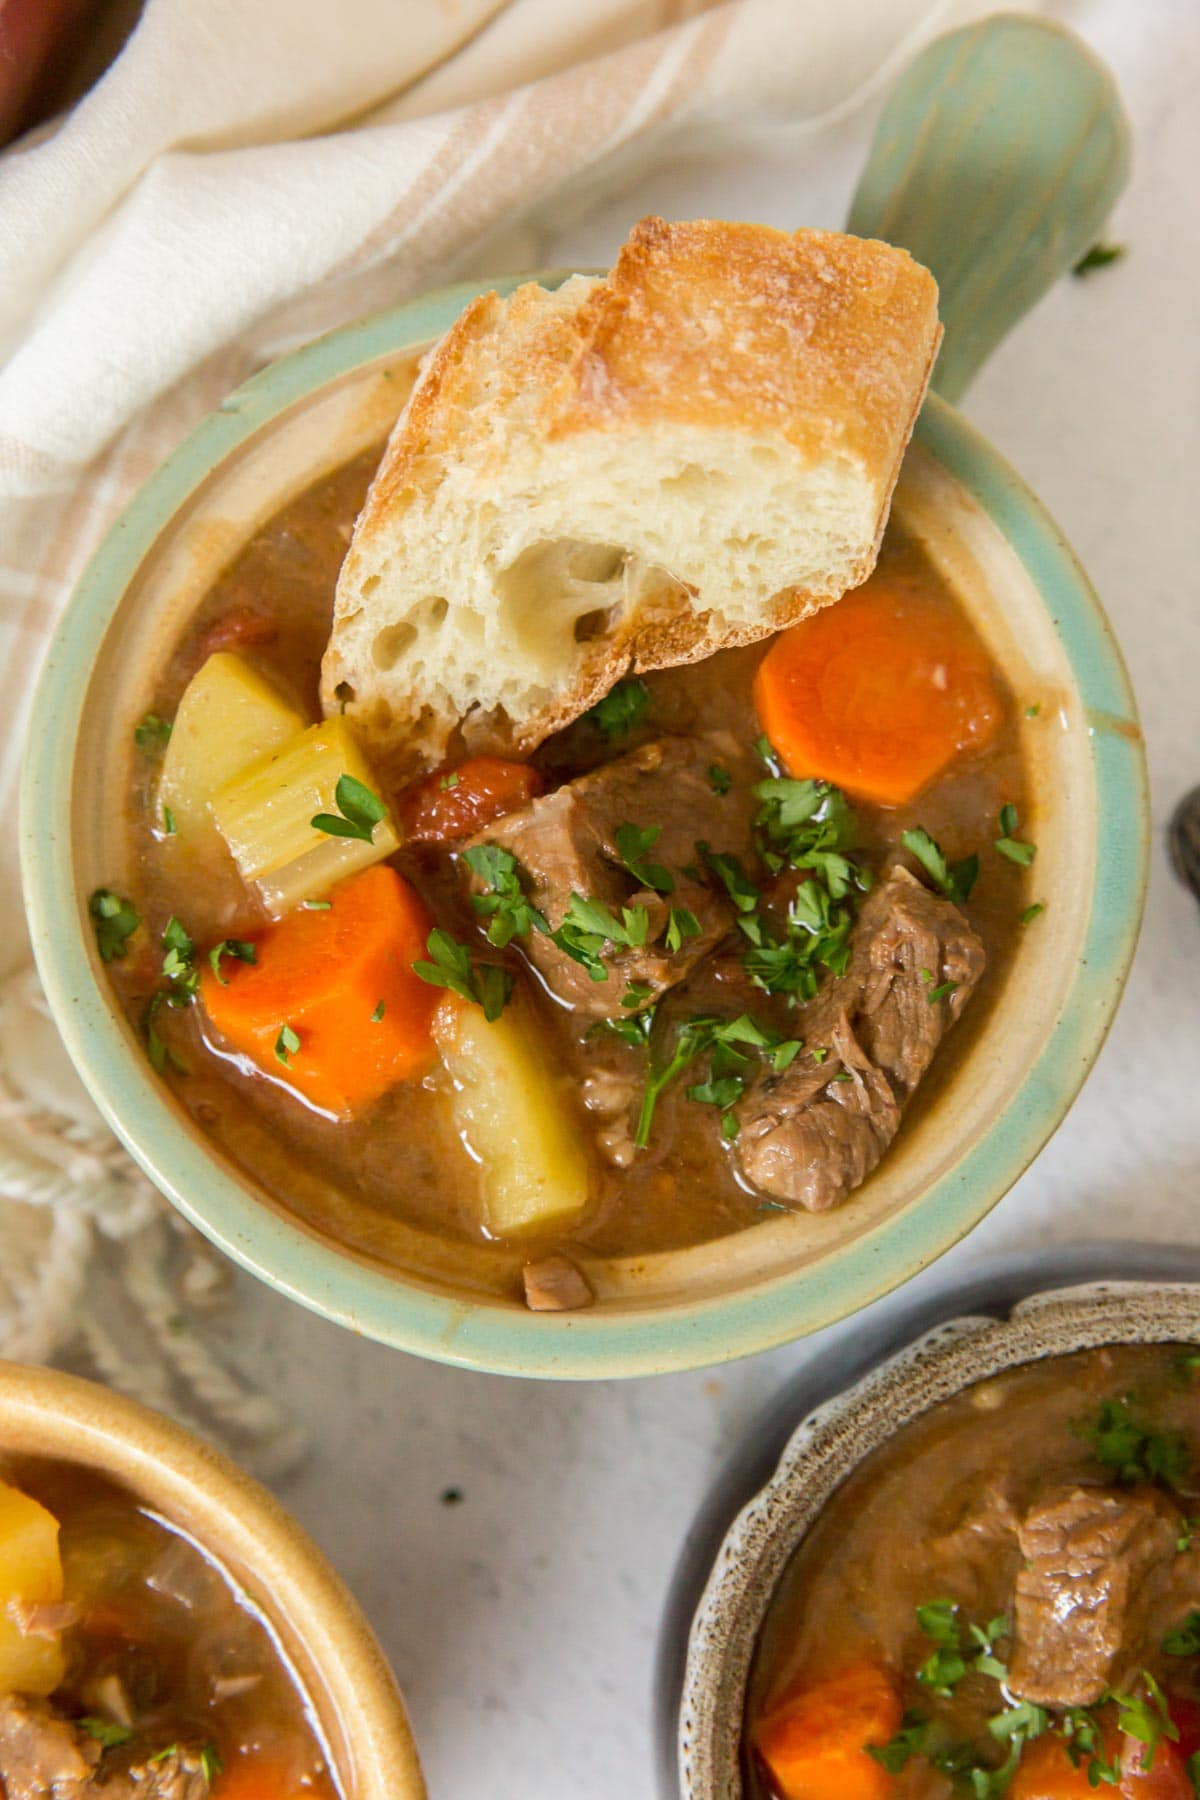 bowls of beef stew, bread